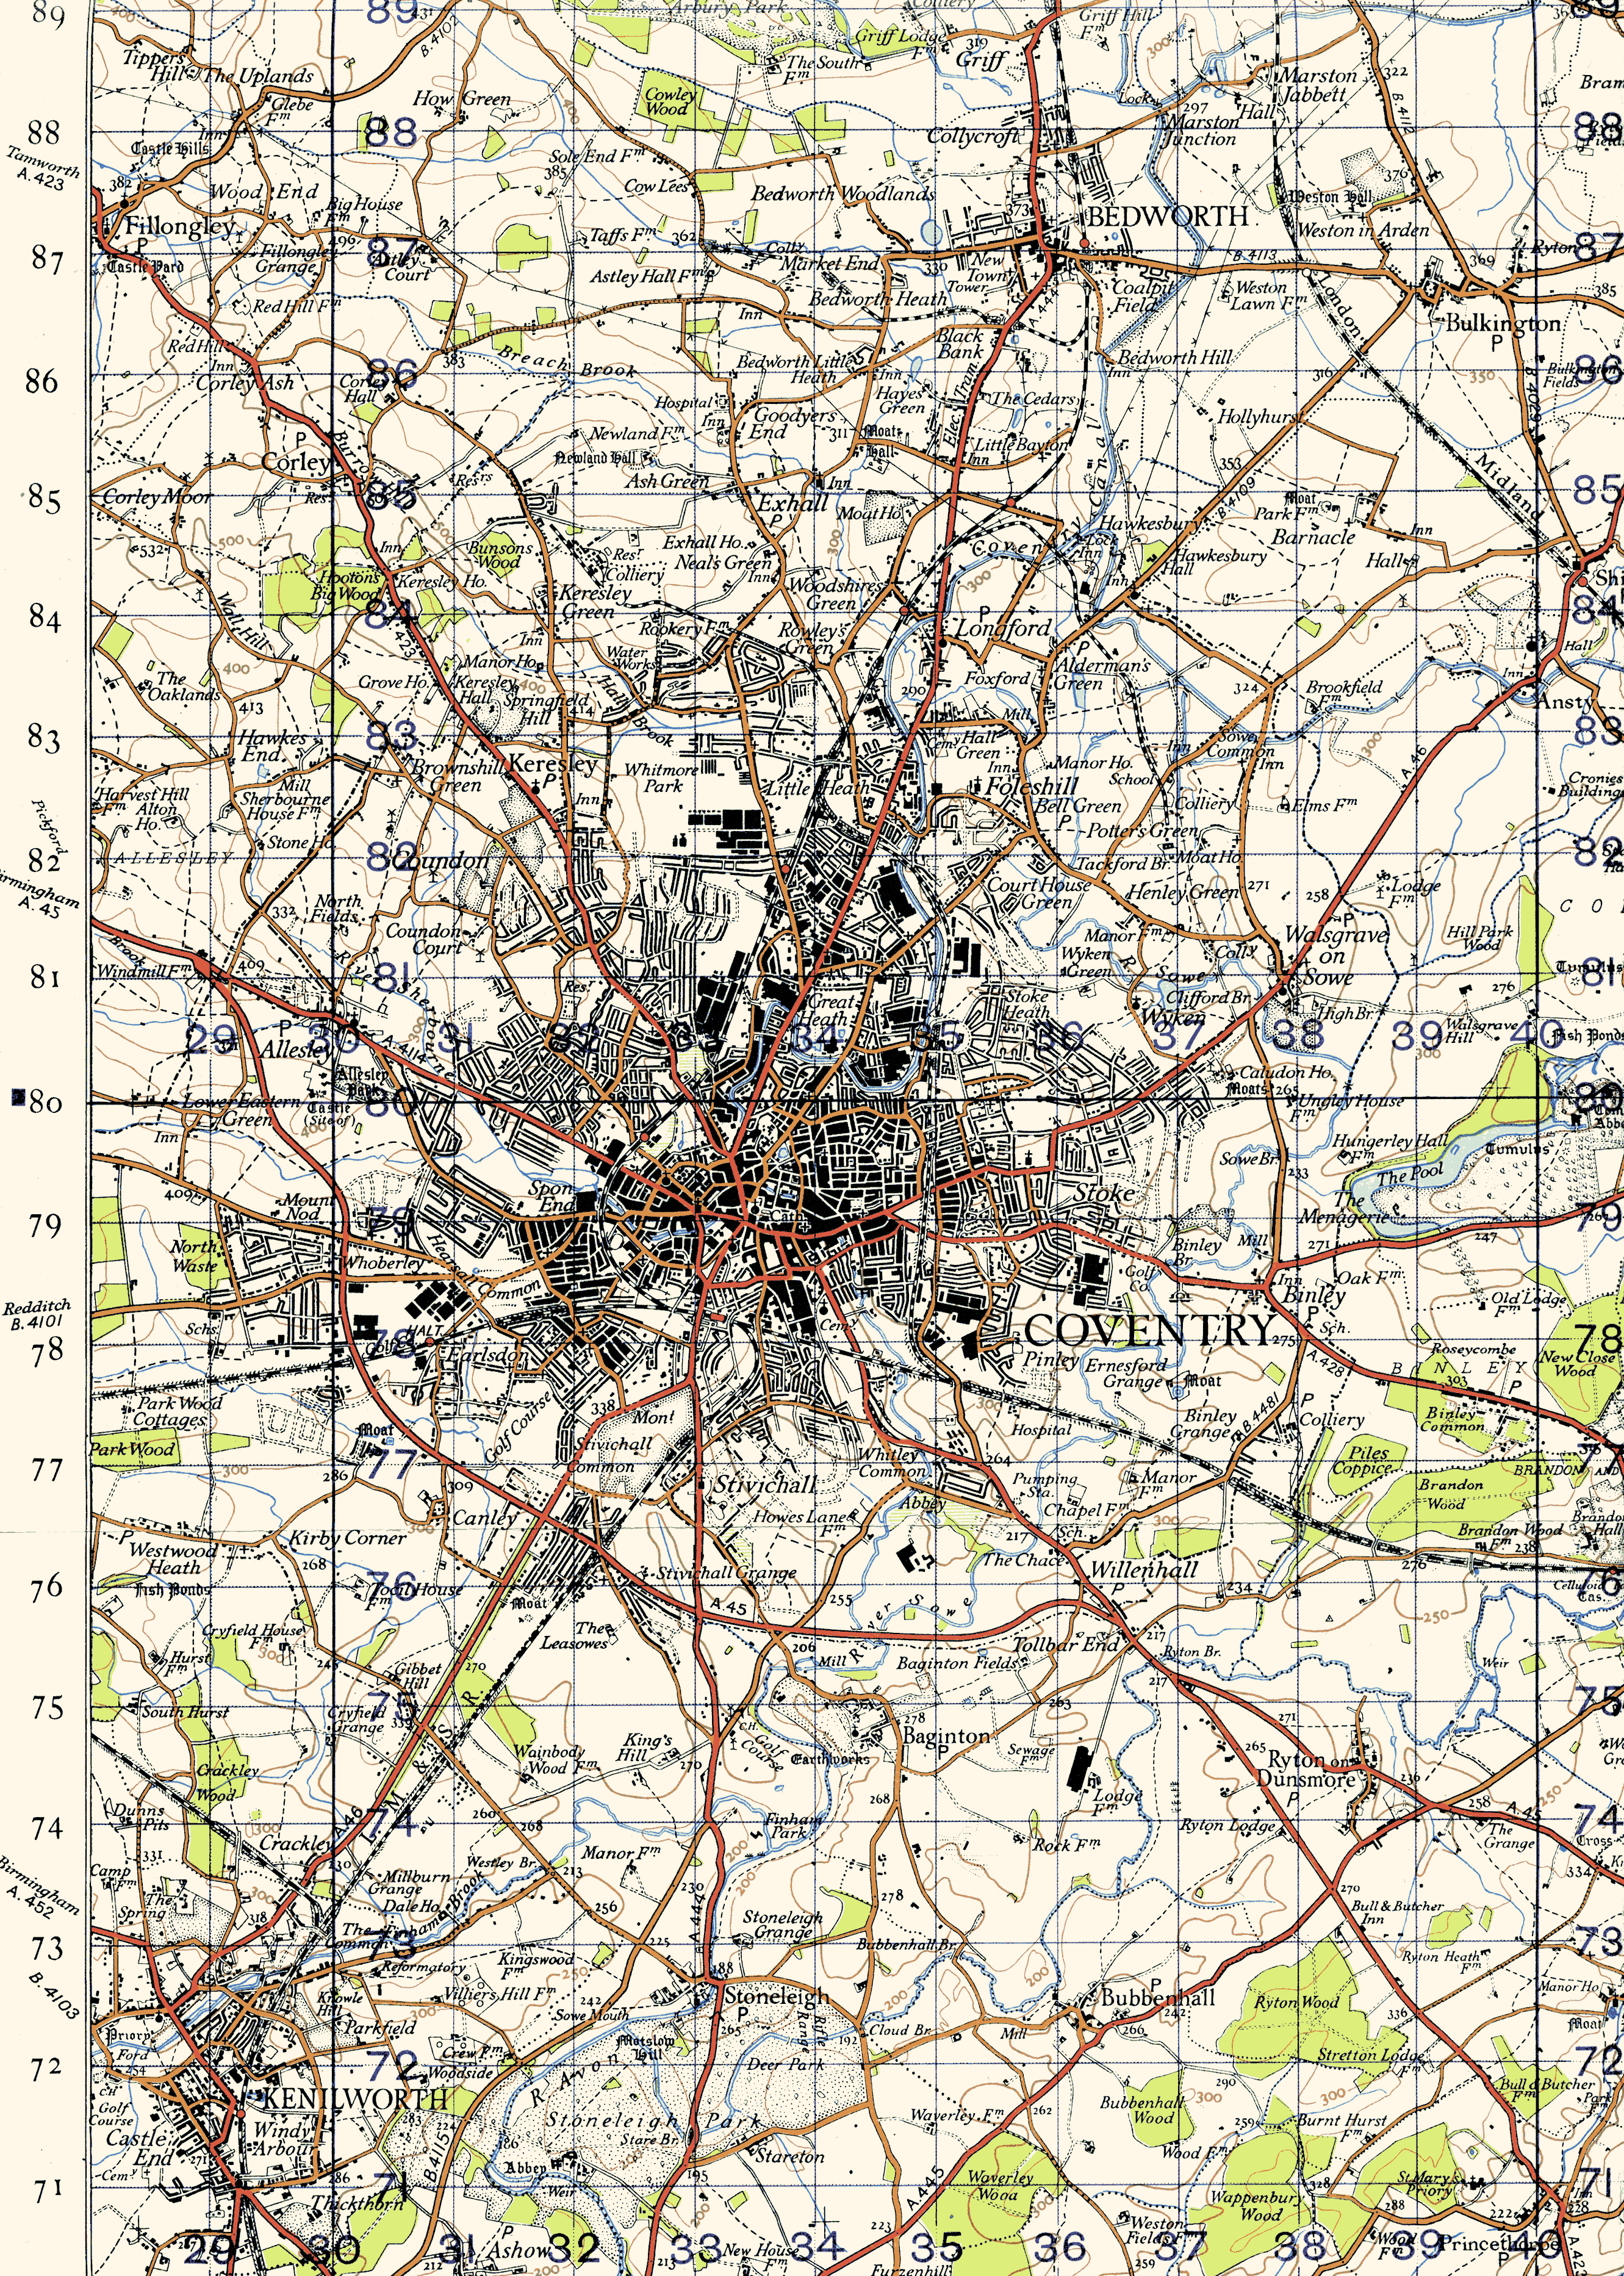 Historic Coventry Scans Of Old Maps - Old os maps